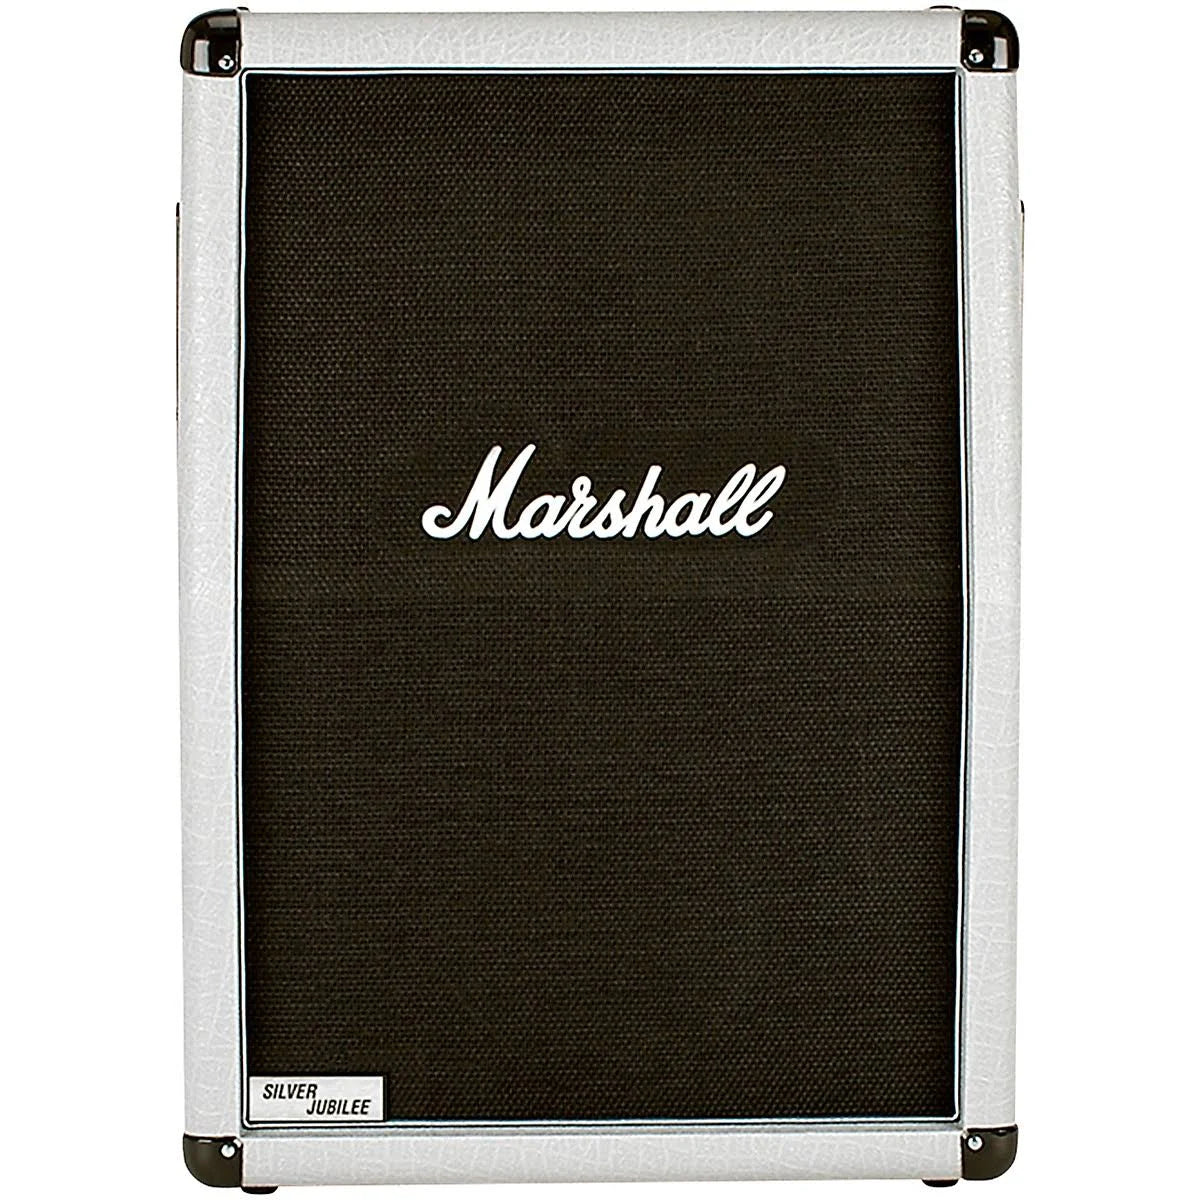 Marshall Studio Silver Jubilee 2536A Guitar Speaker Cabinet, Angled (140 Watts, 2x12 Inch), 8 Ohms